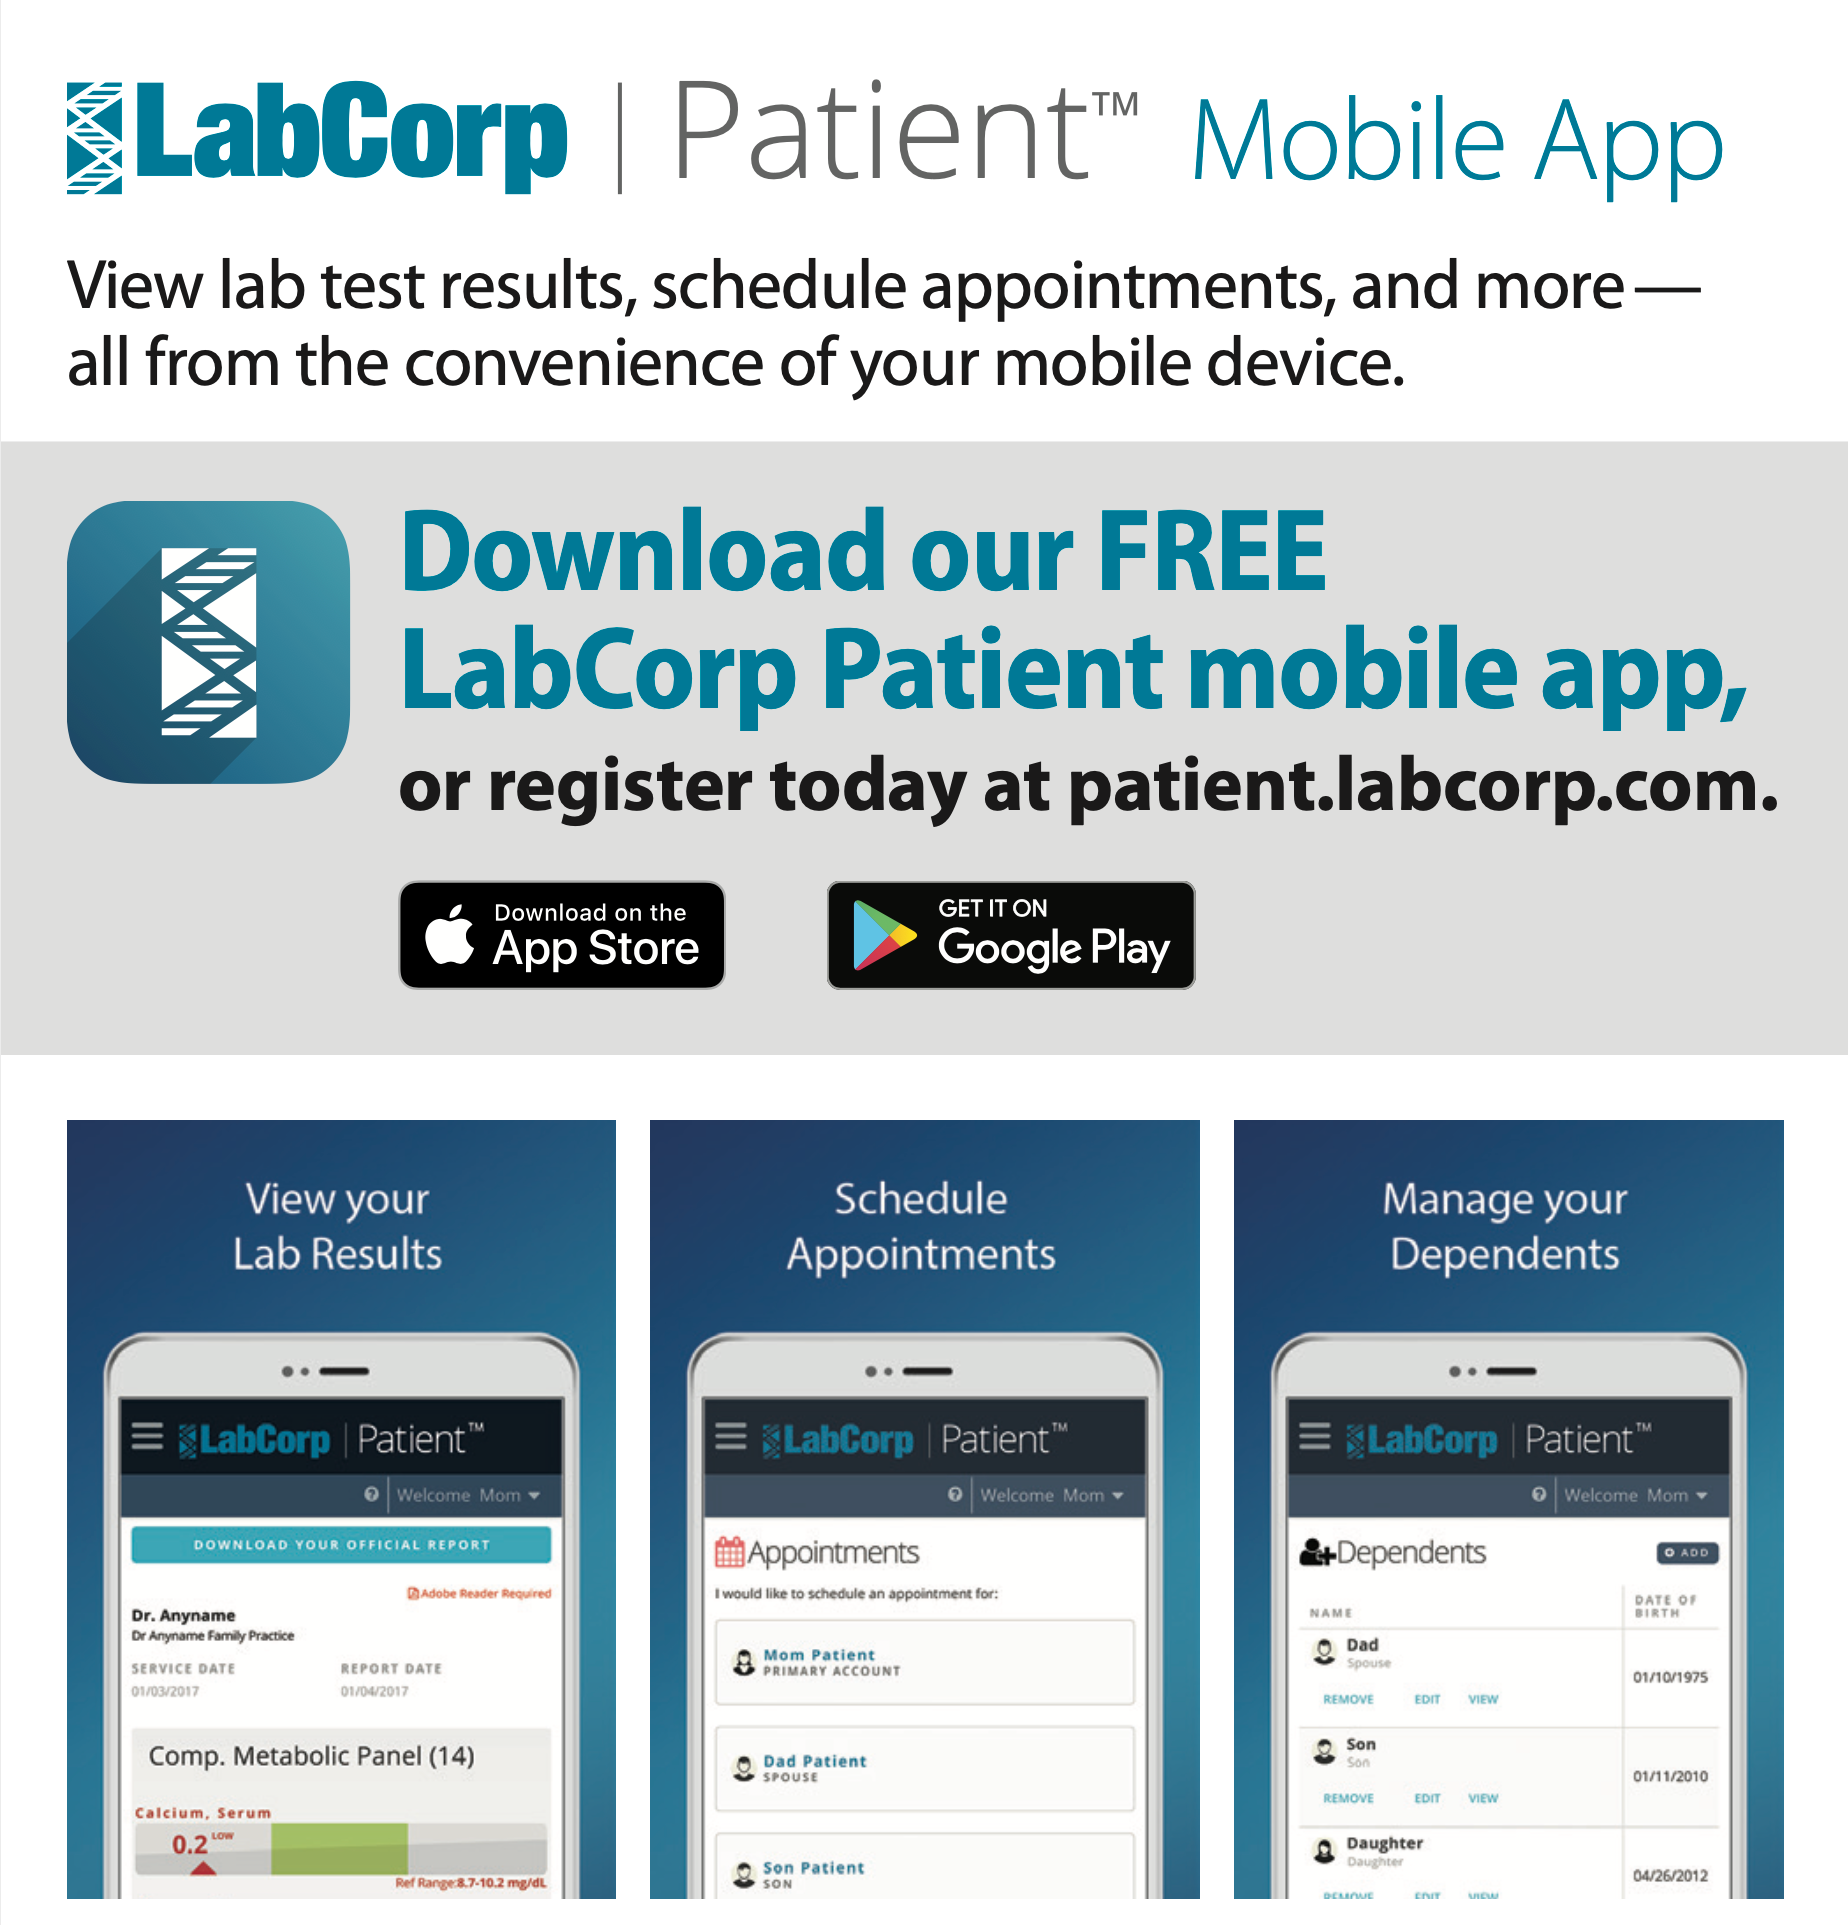 Graphic describing Lab Corp Patient Mobile App. Click on image to view the accessible PDF.